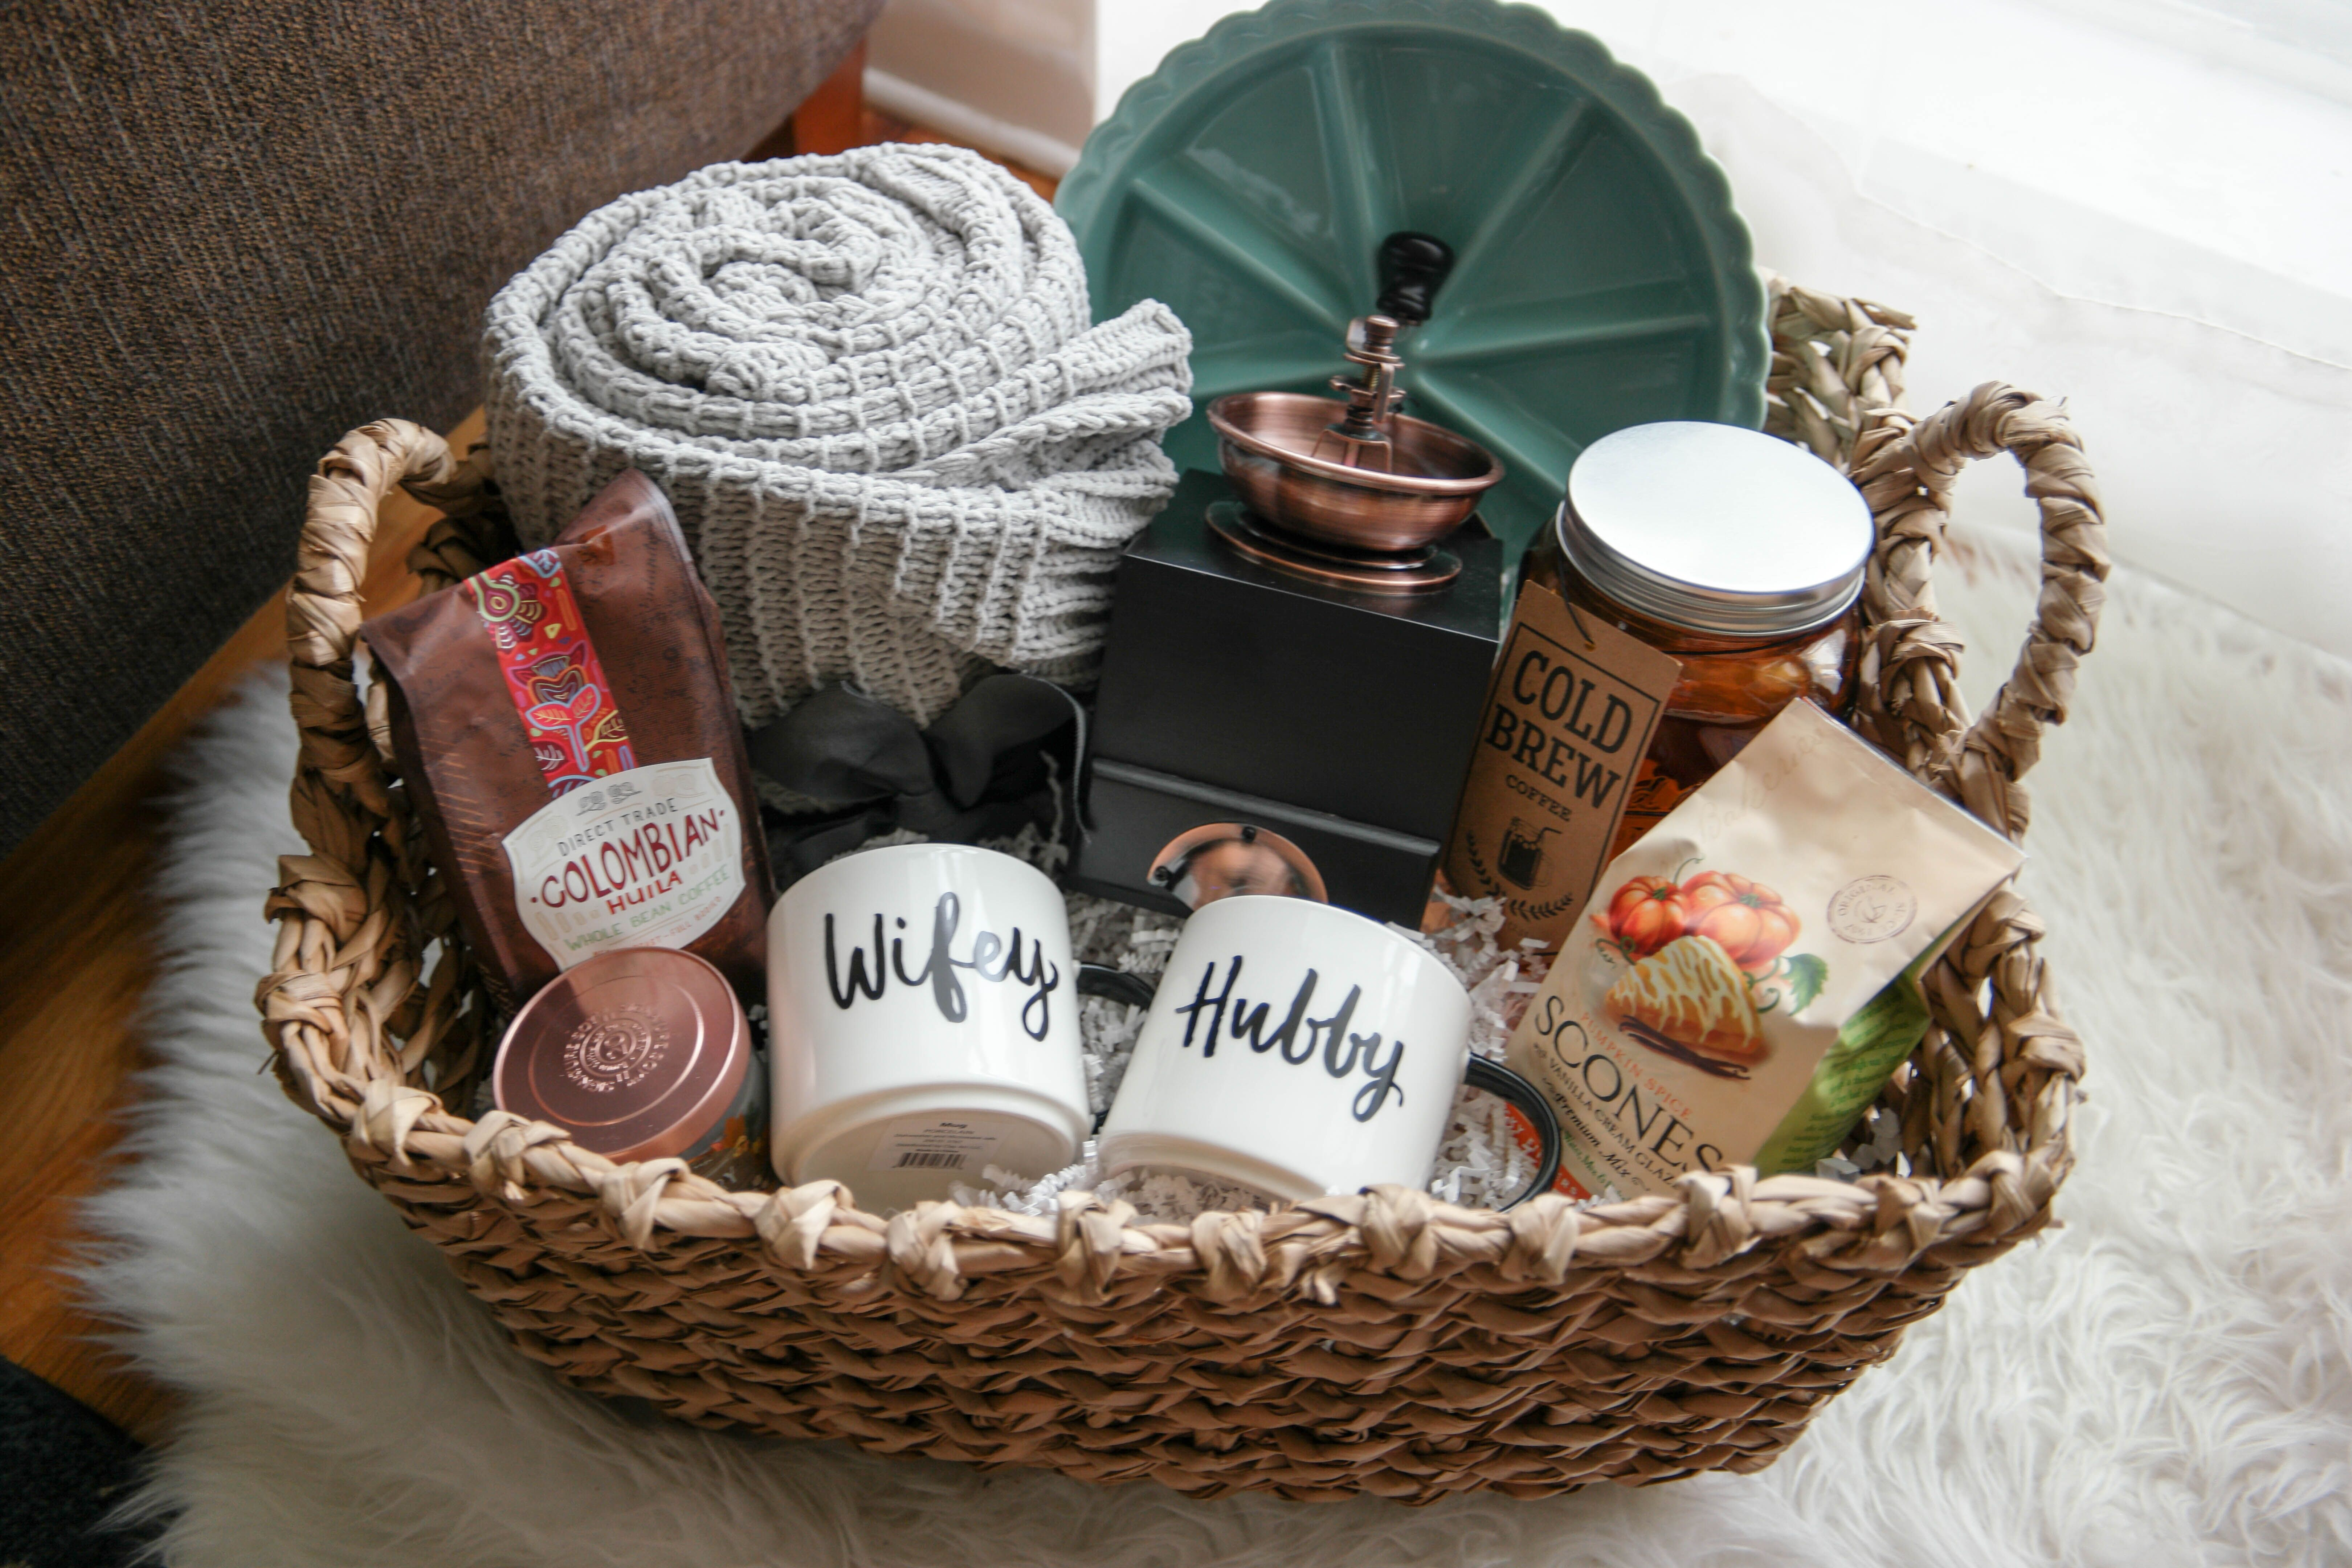 Top 20 Couples Gift Basket Ideas Home Diy Projects Inspiration Diy Crafts And Party Ide Couple Gift Basket Ideas Couple Gifts Basket Christmas Gift Baskets